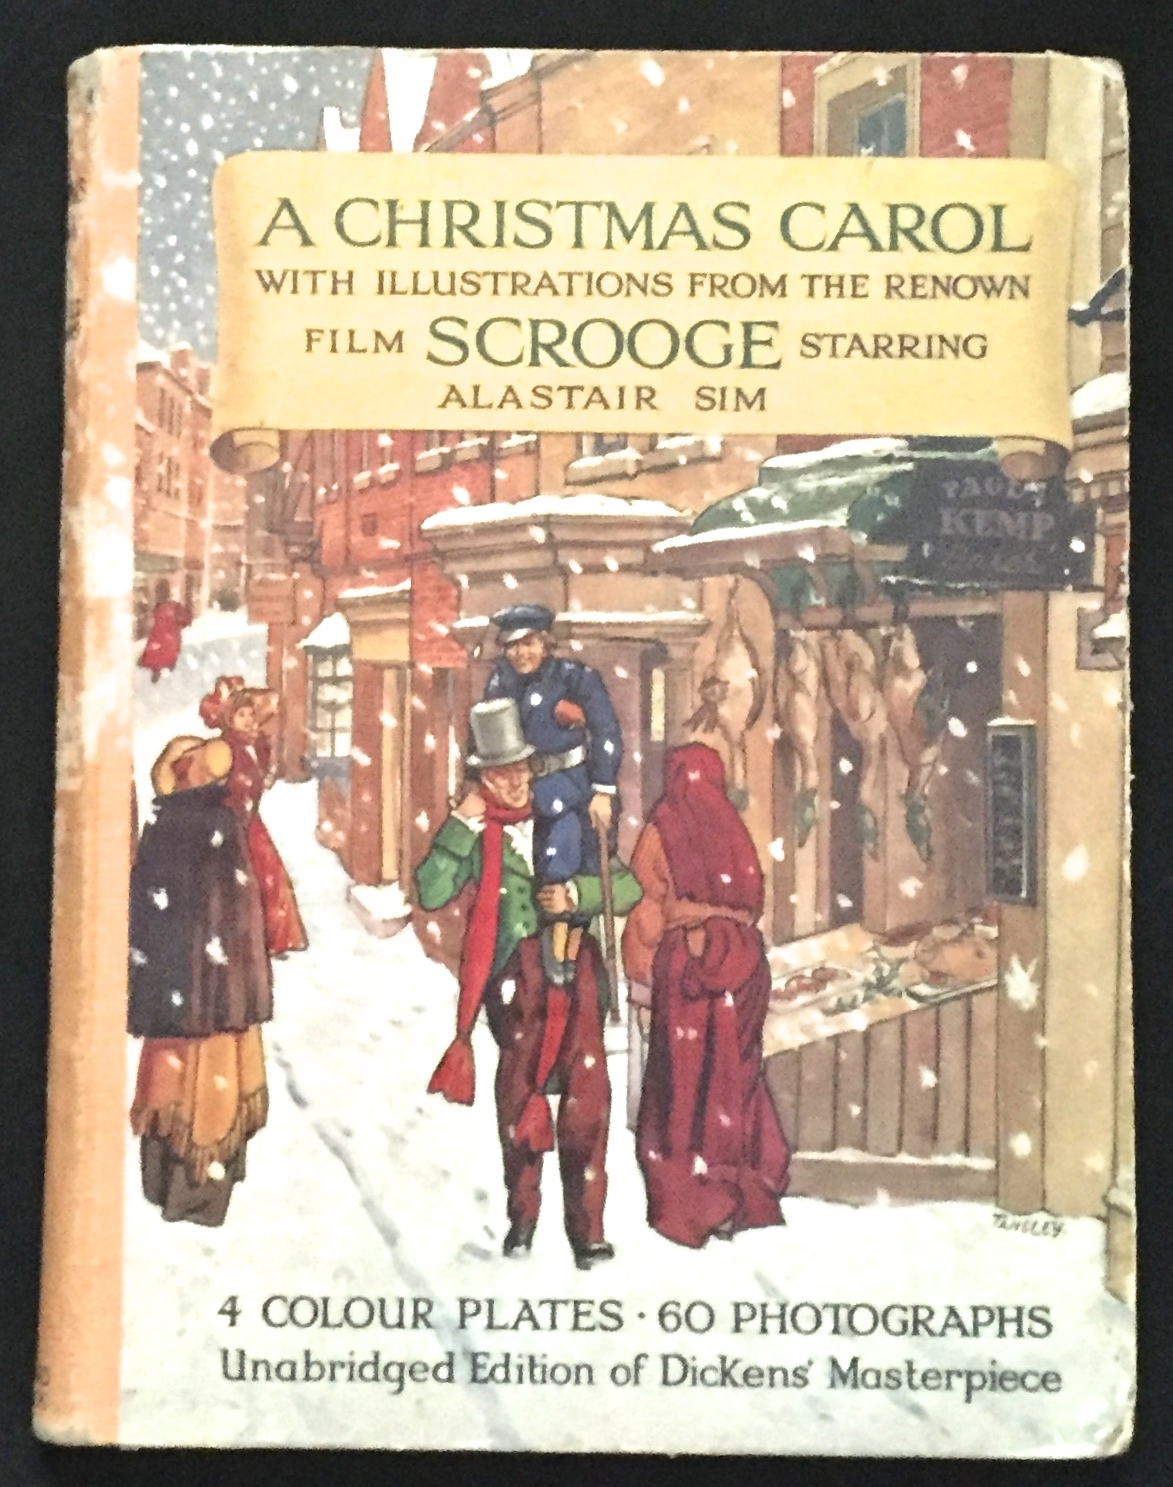 Christmas Carol Book.A Christmas Carol Movie Tie In Edition Being A Ghost Story Of Christmaswith 4 Plates In Colour By Charles Dickens On Borg Antiquarian